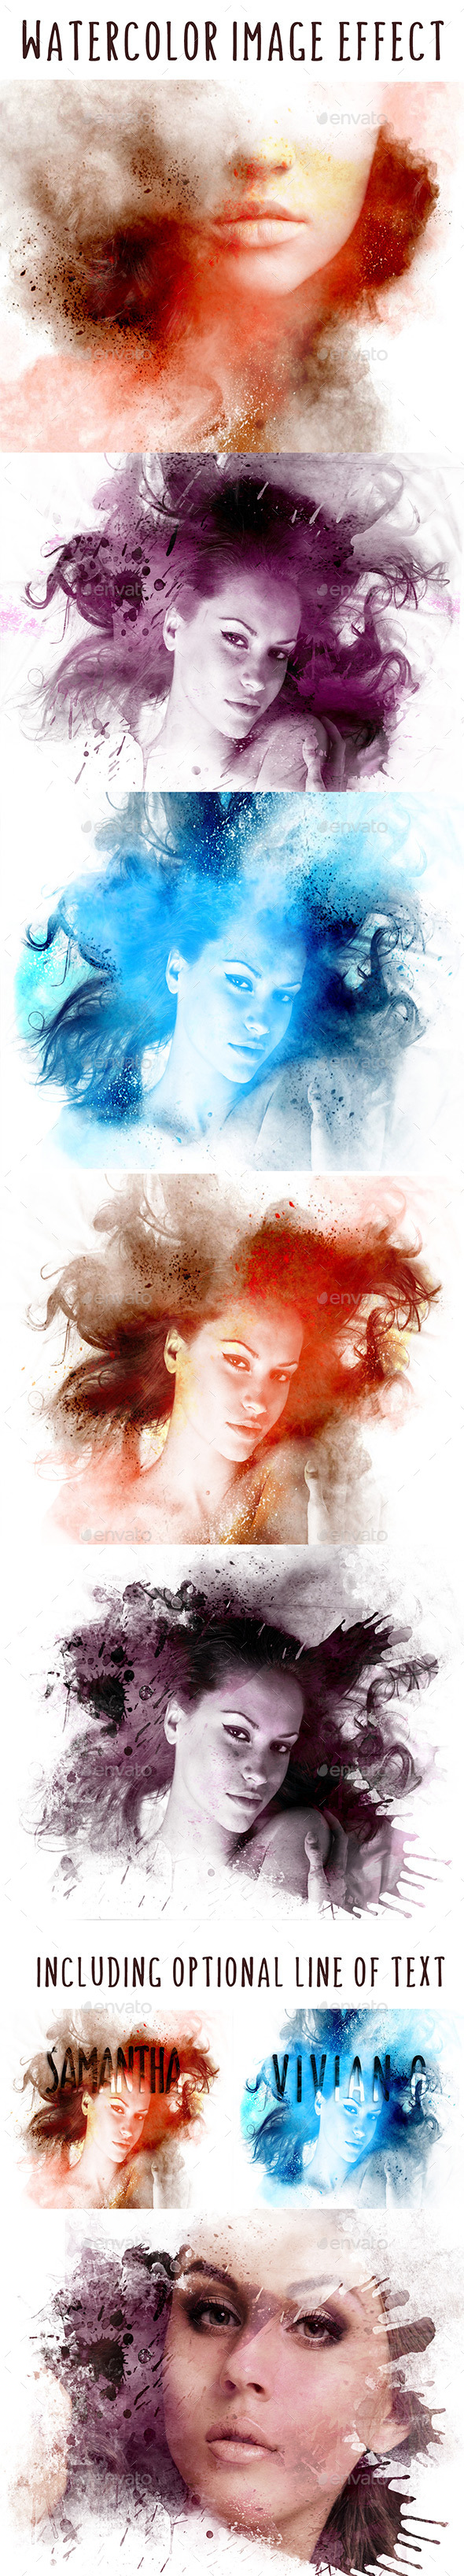 Splash Watercolor Image Effect - Artistic Photo Templates